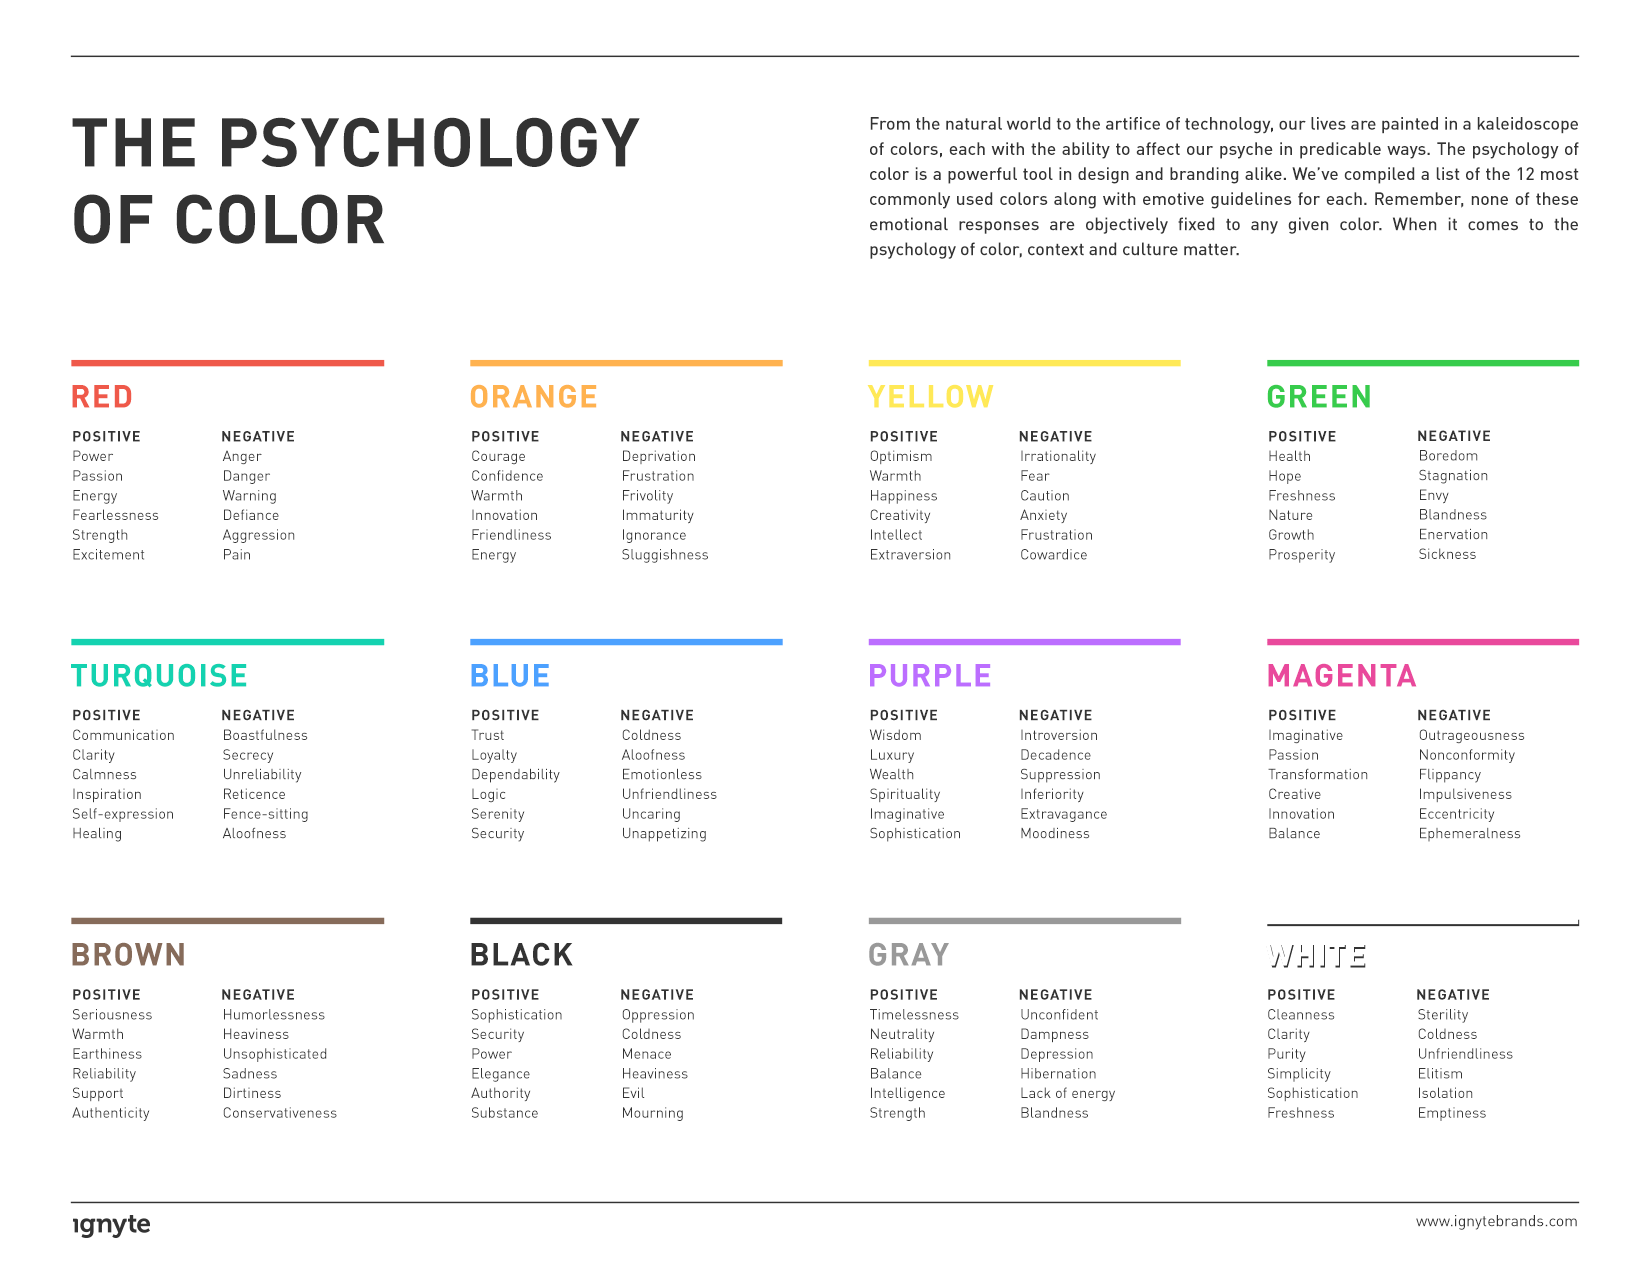 the psychology of color infographic ignyte branding agency